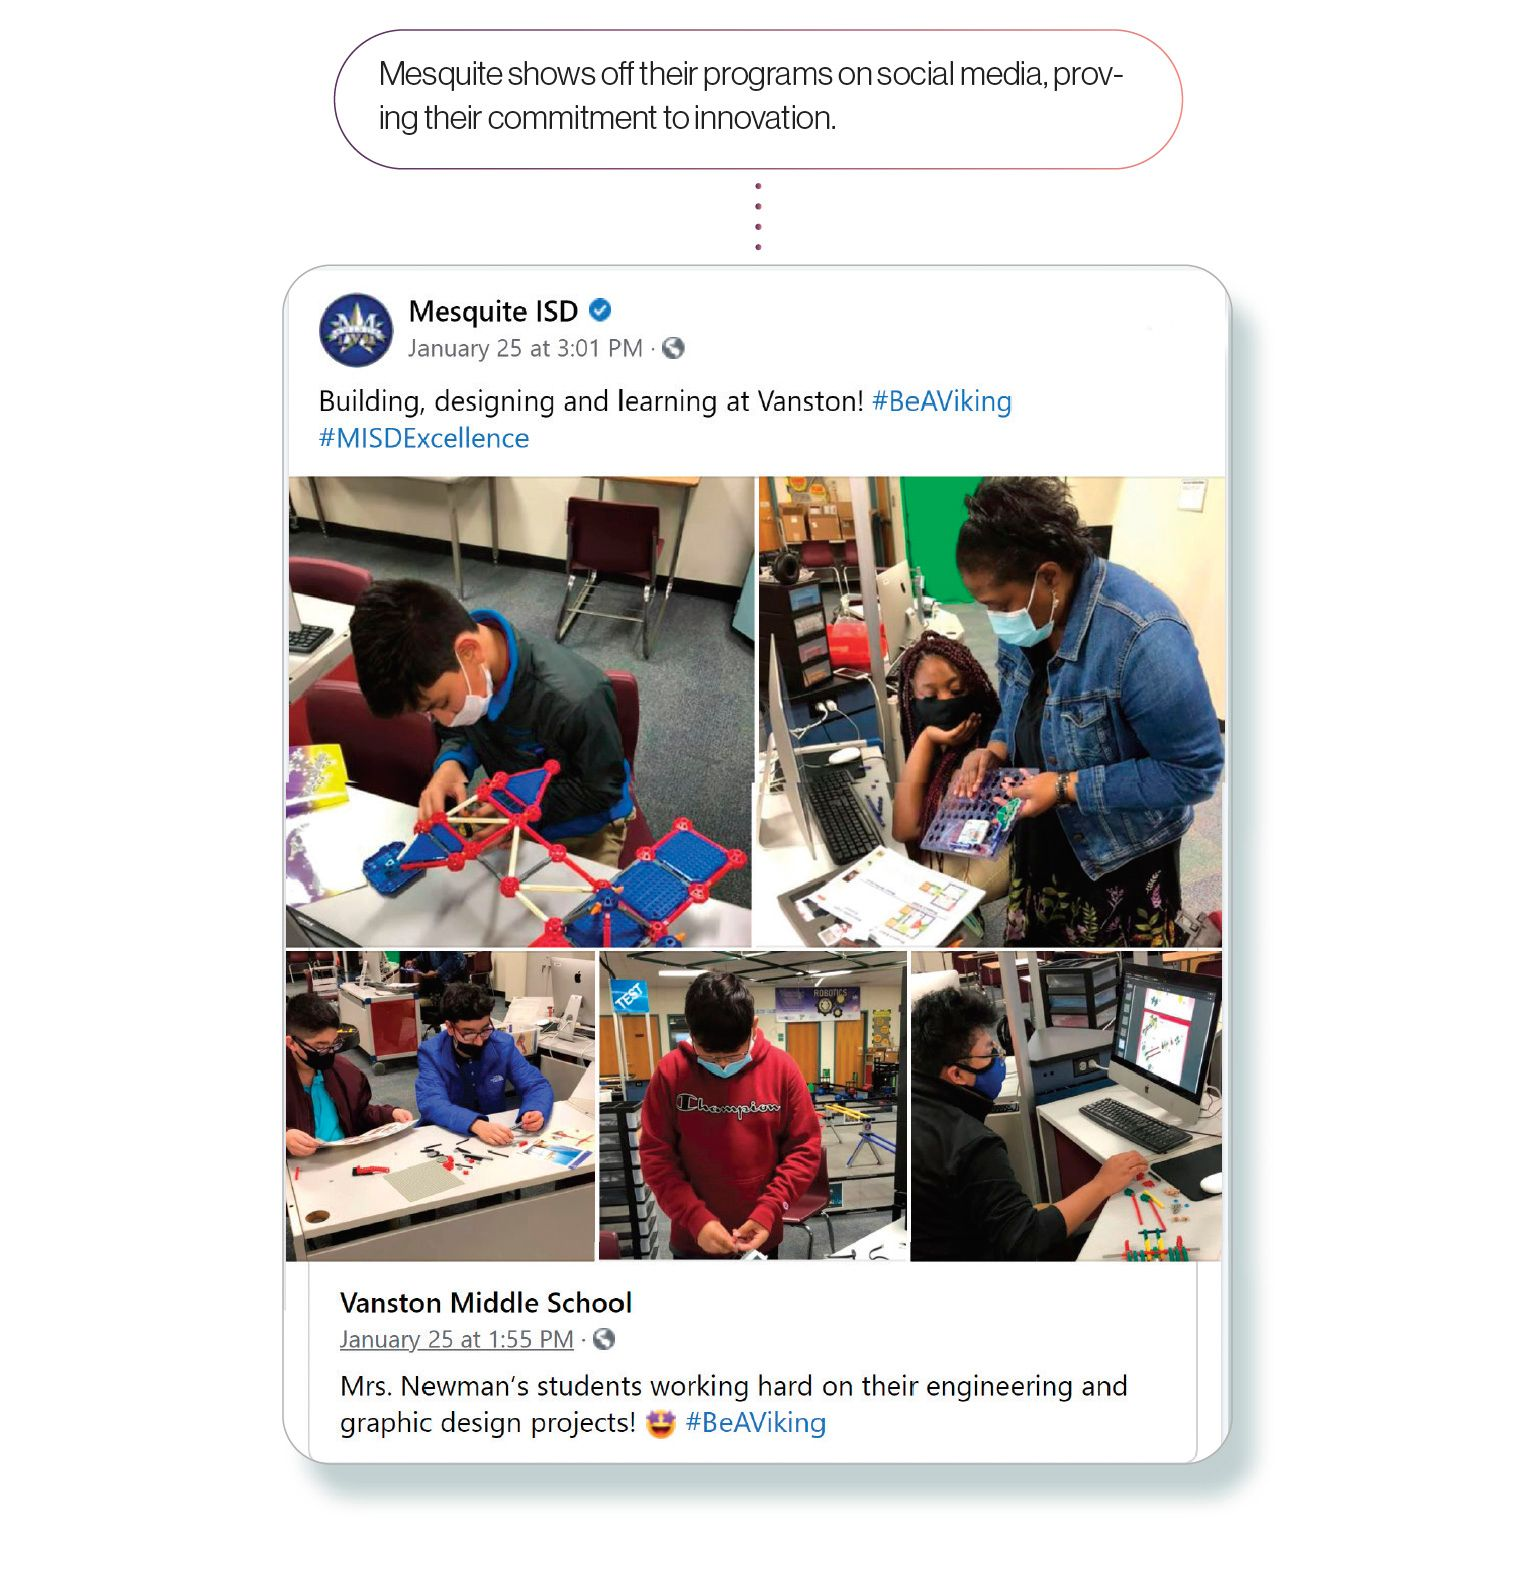 Image: A Facebook post by Mesquite ISD showcasing middle school students working on graphic design and engineering projects, with the SchoolCEO caption 'Mesquite shows off their programs on social media, proving their commitment to innovation'